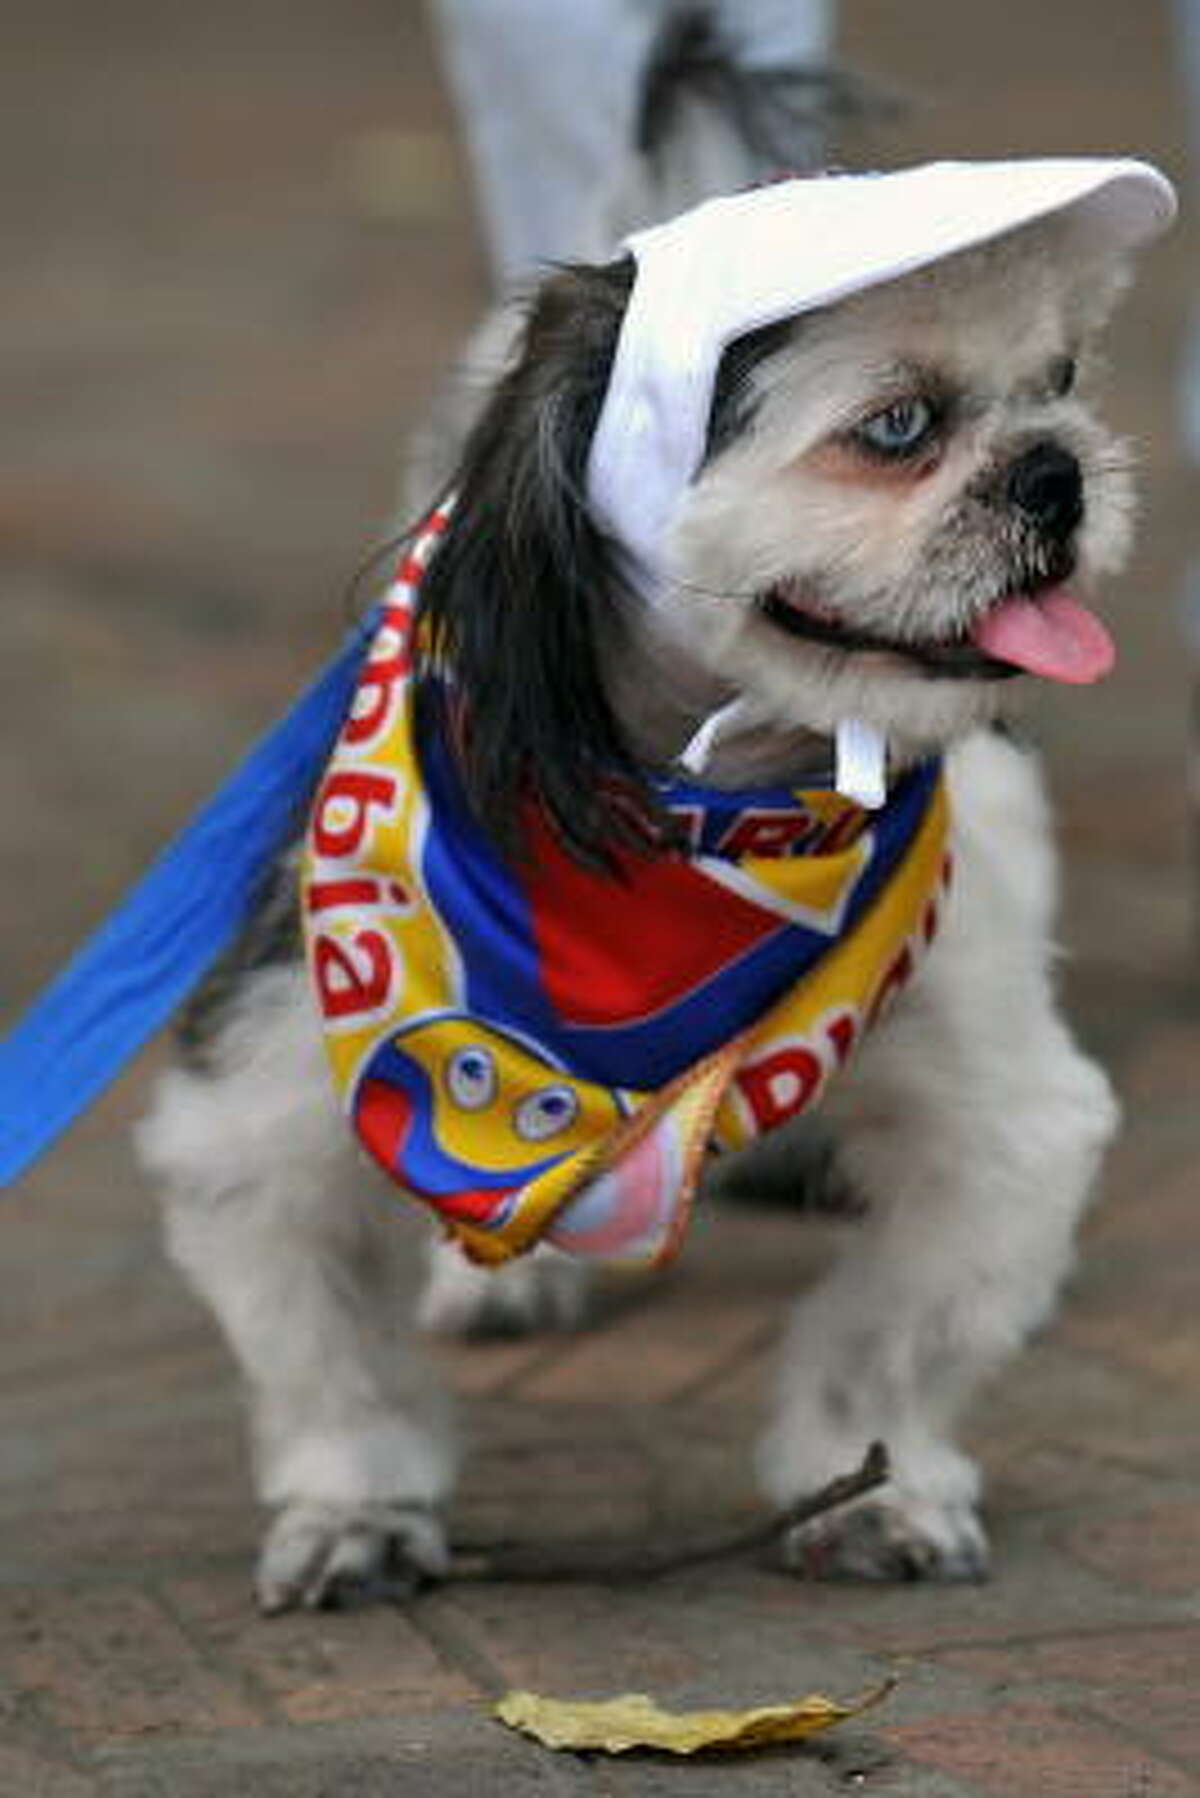 A dog wearing a cap and a scarf with Colombia's national flag colors Sunday in Cali, department of Valle del Cauca, Colombia, during the World Animal Day, which was established in 1931 as a way to highlight the plight of endangered species. October 4th was chosen as World Animal Day as it is the feast day of St. Francis of Assisi, the patron saint of animals.